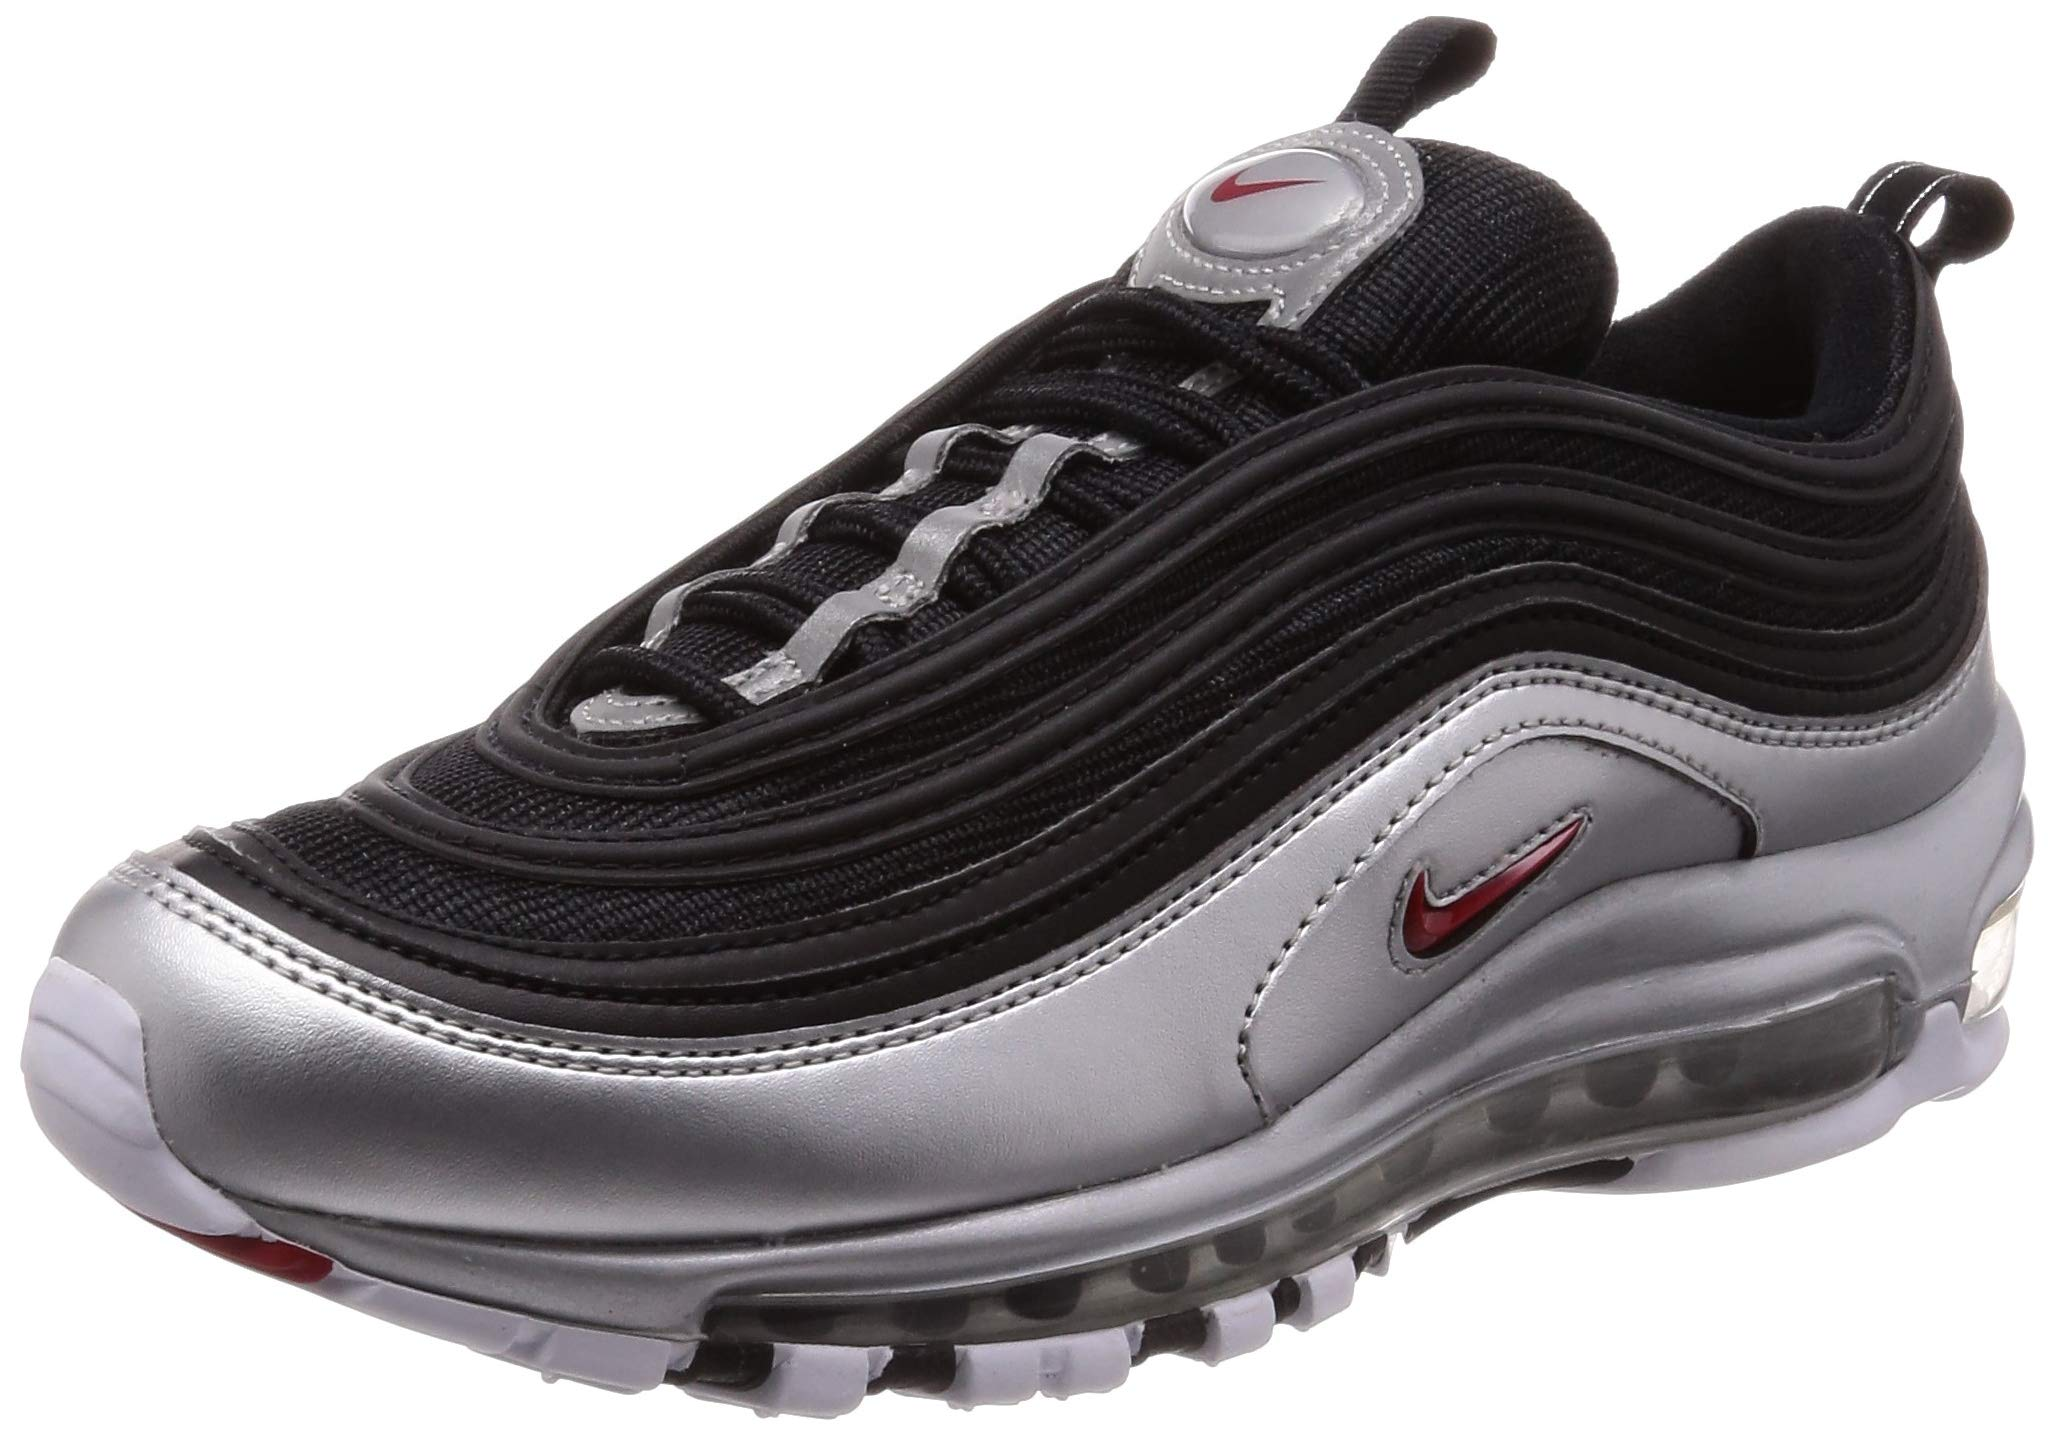 Nike Air Max 97 OG Japan sneakers price in Dubai, UAE | Compare Prices